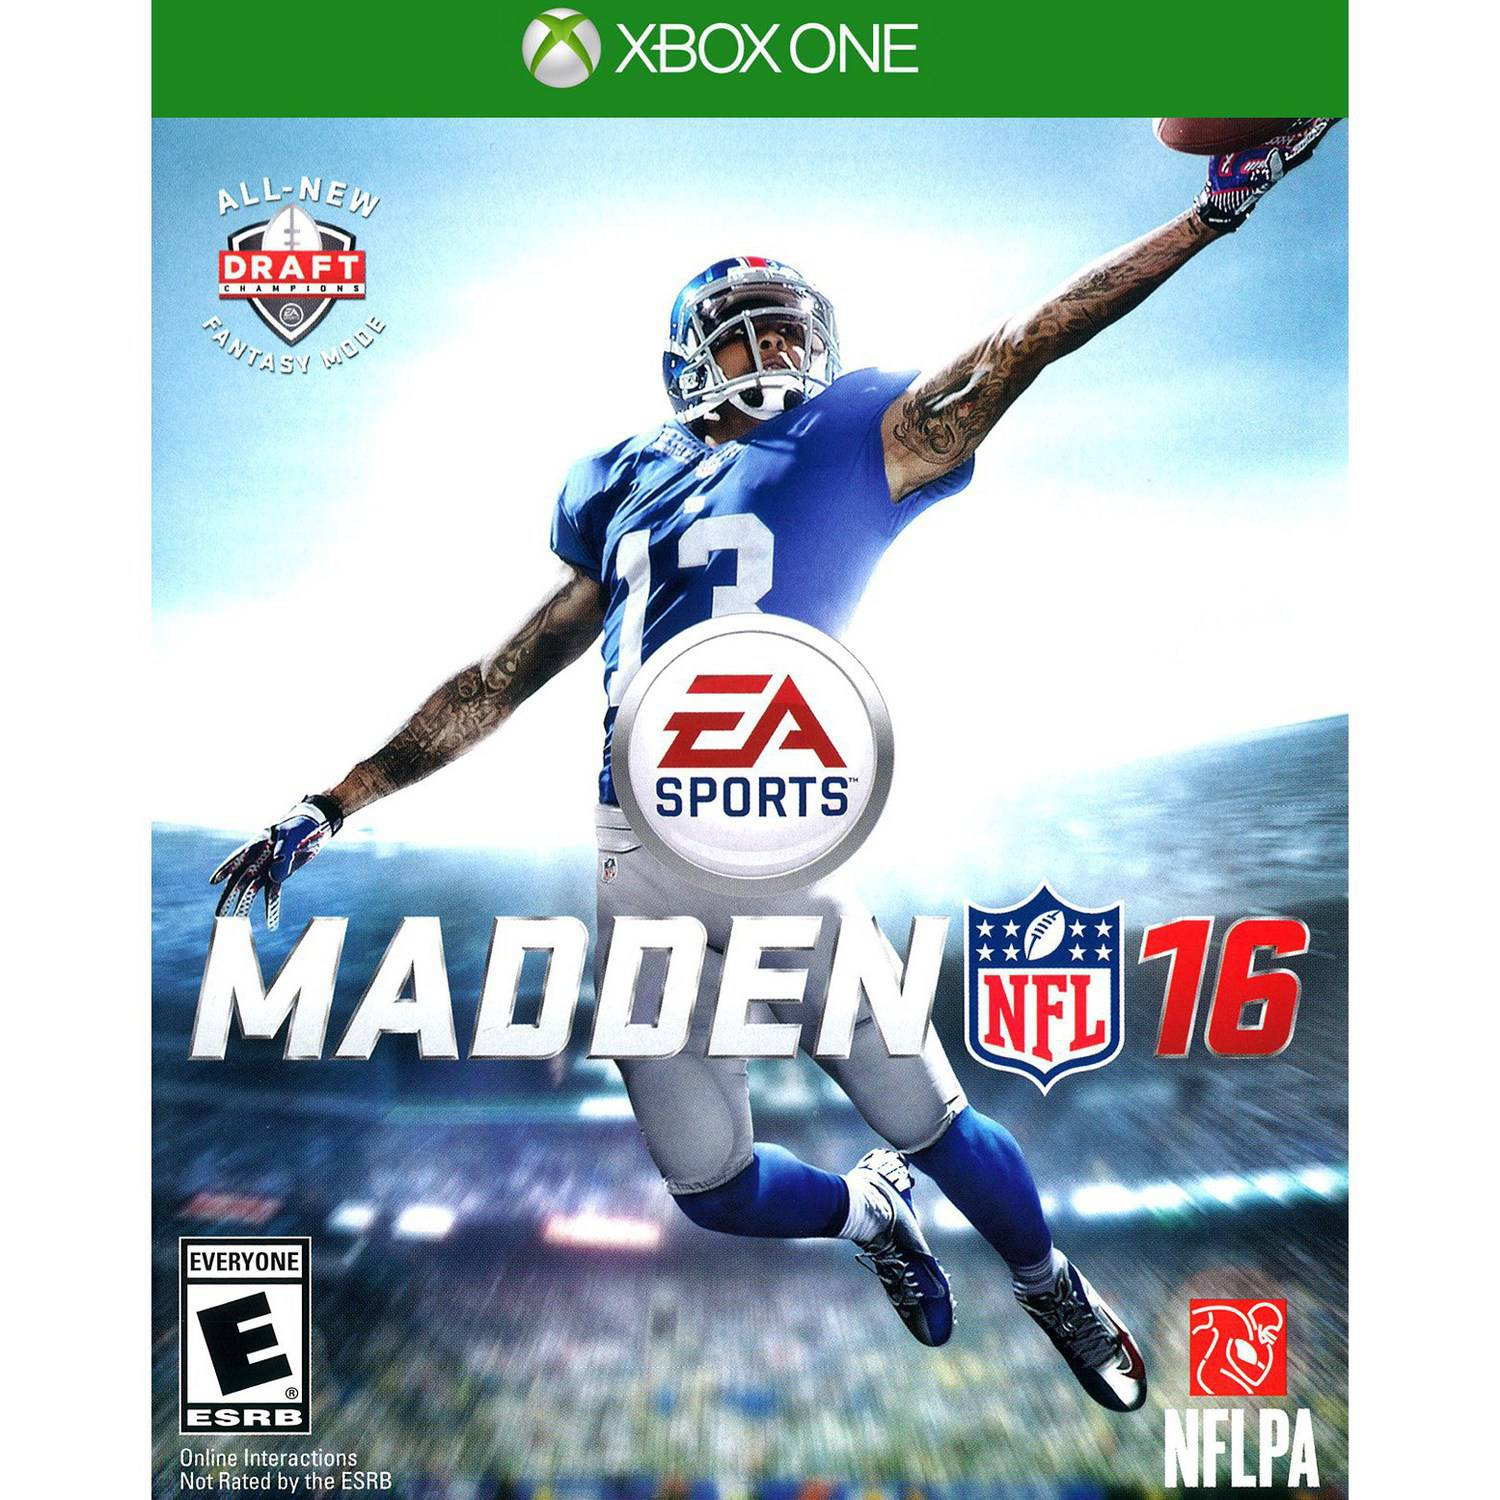 Madden NFL 16, Electronic Arts, Xbox One, 014633733815